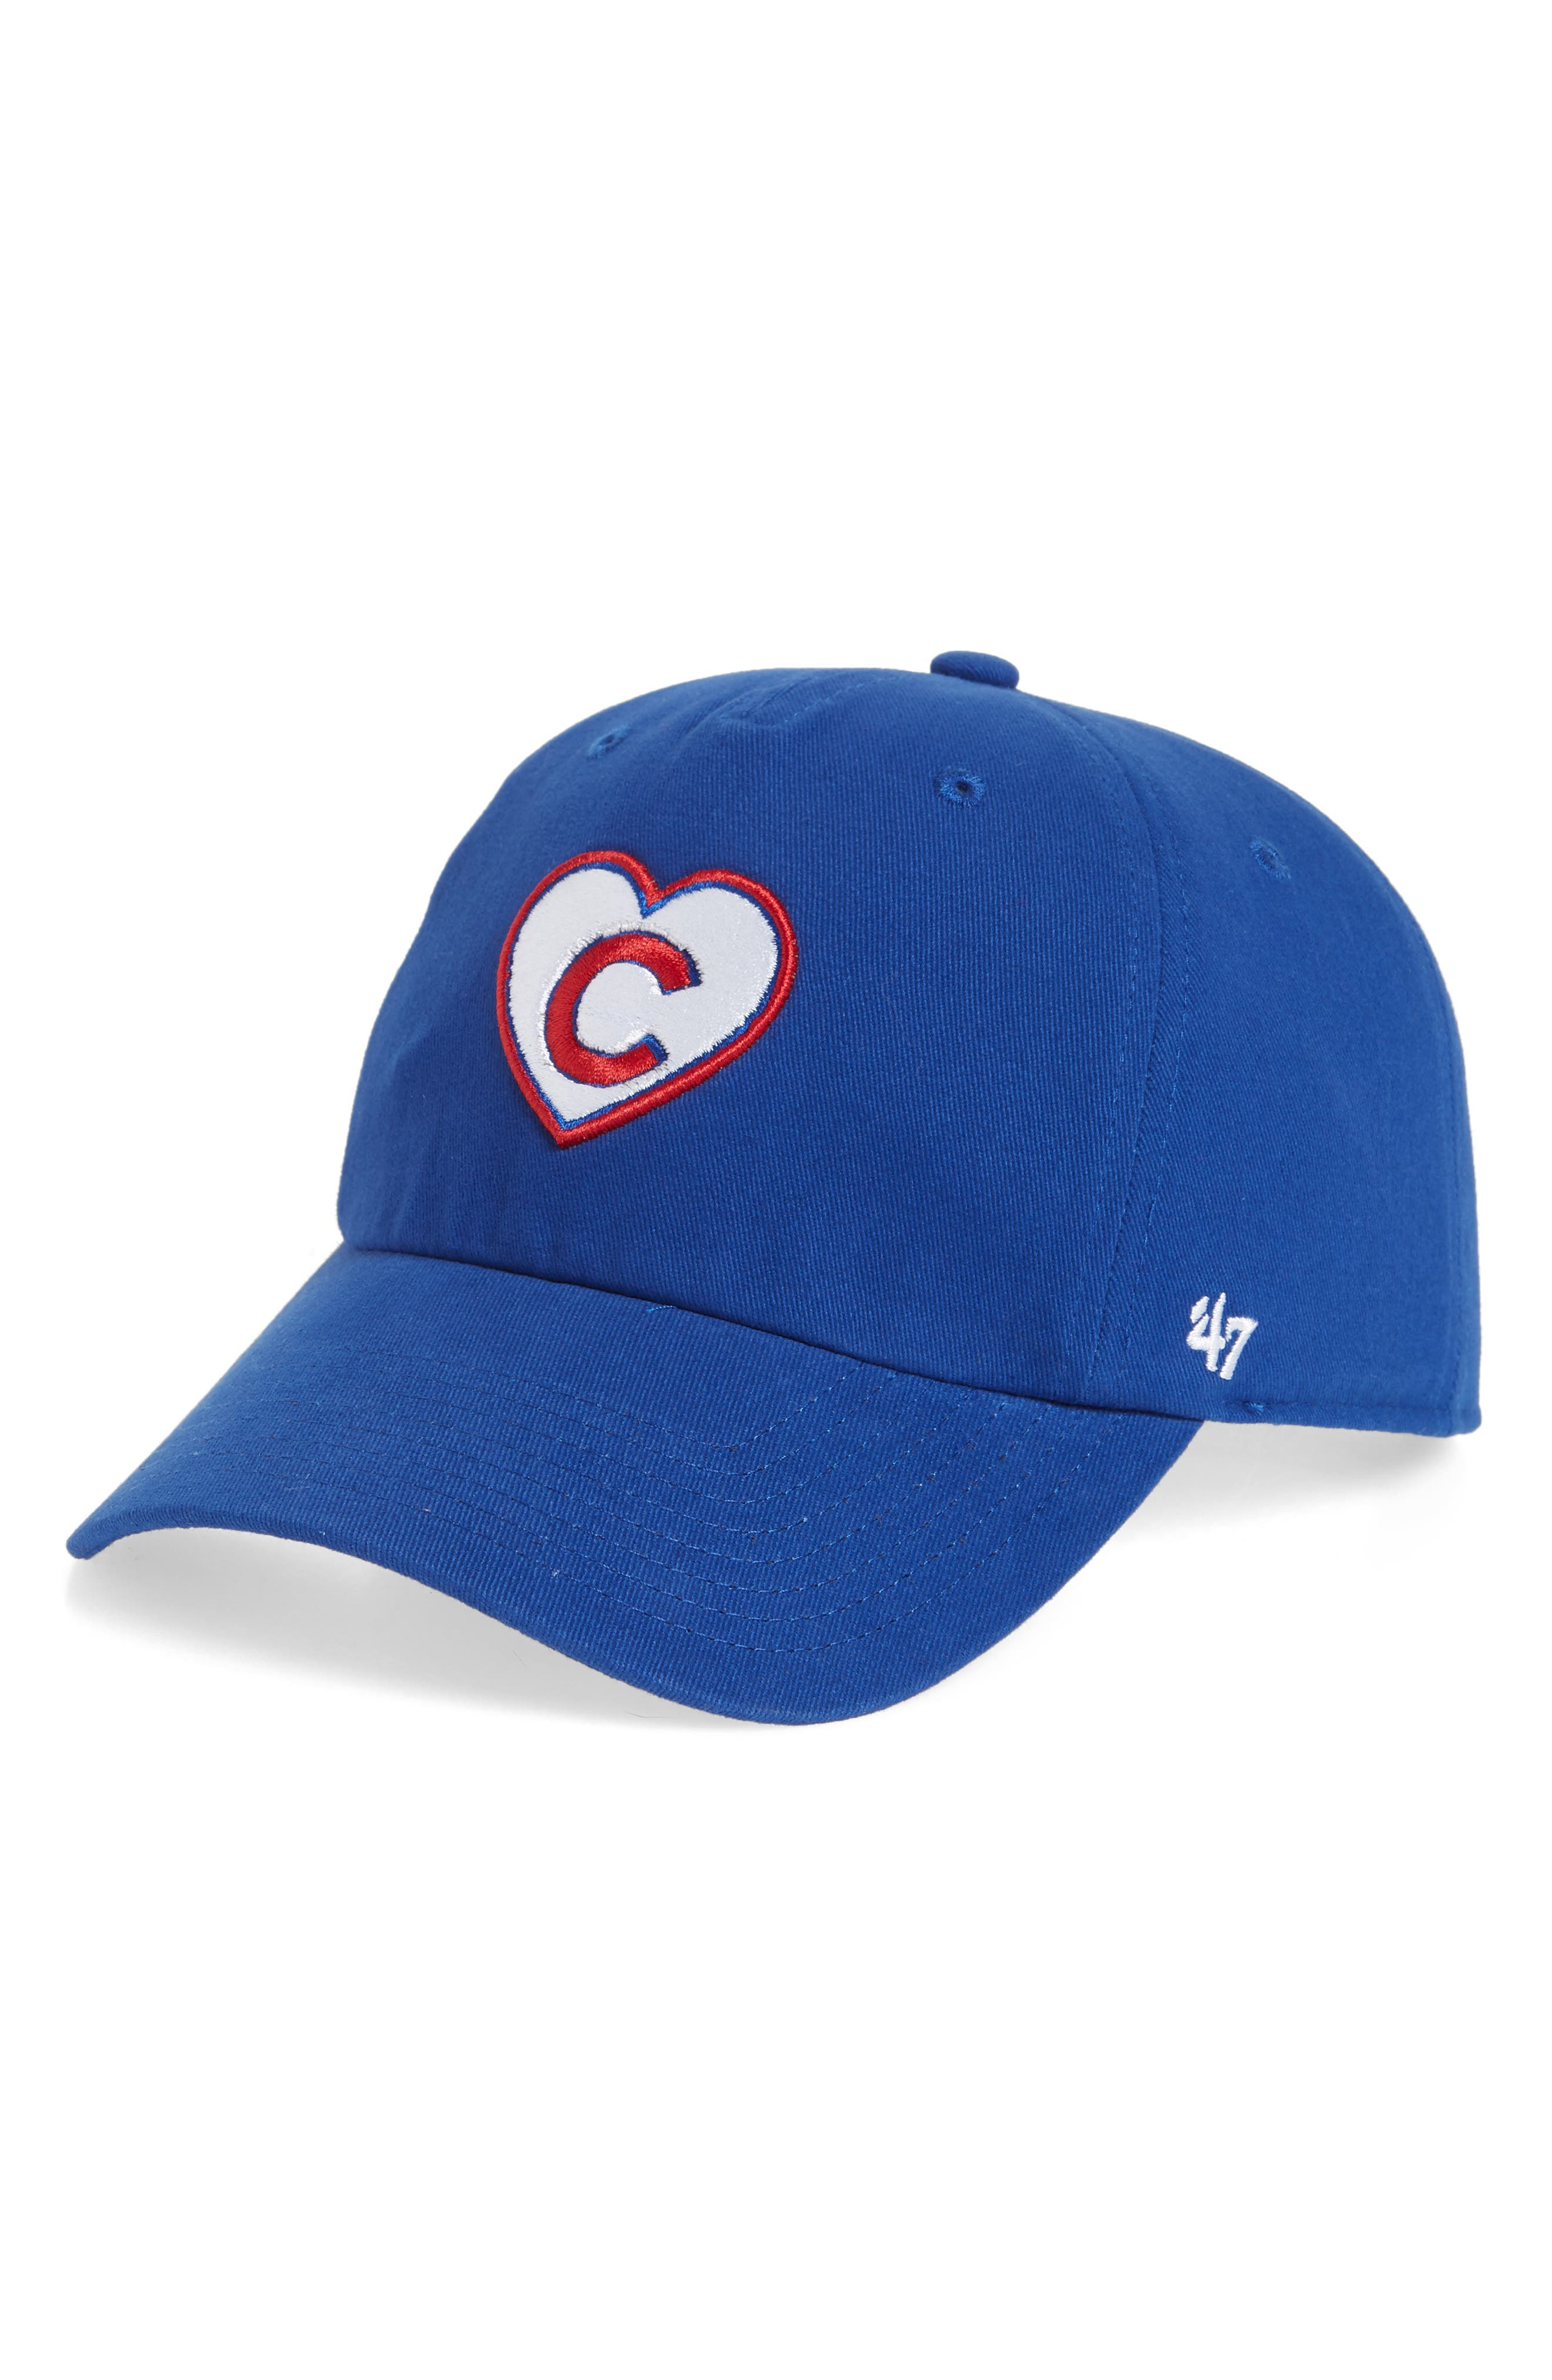 Courtney Clean-Up Chicago Cubs Baseball Cap,                         Main,                         color, 400